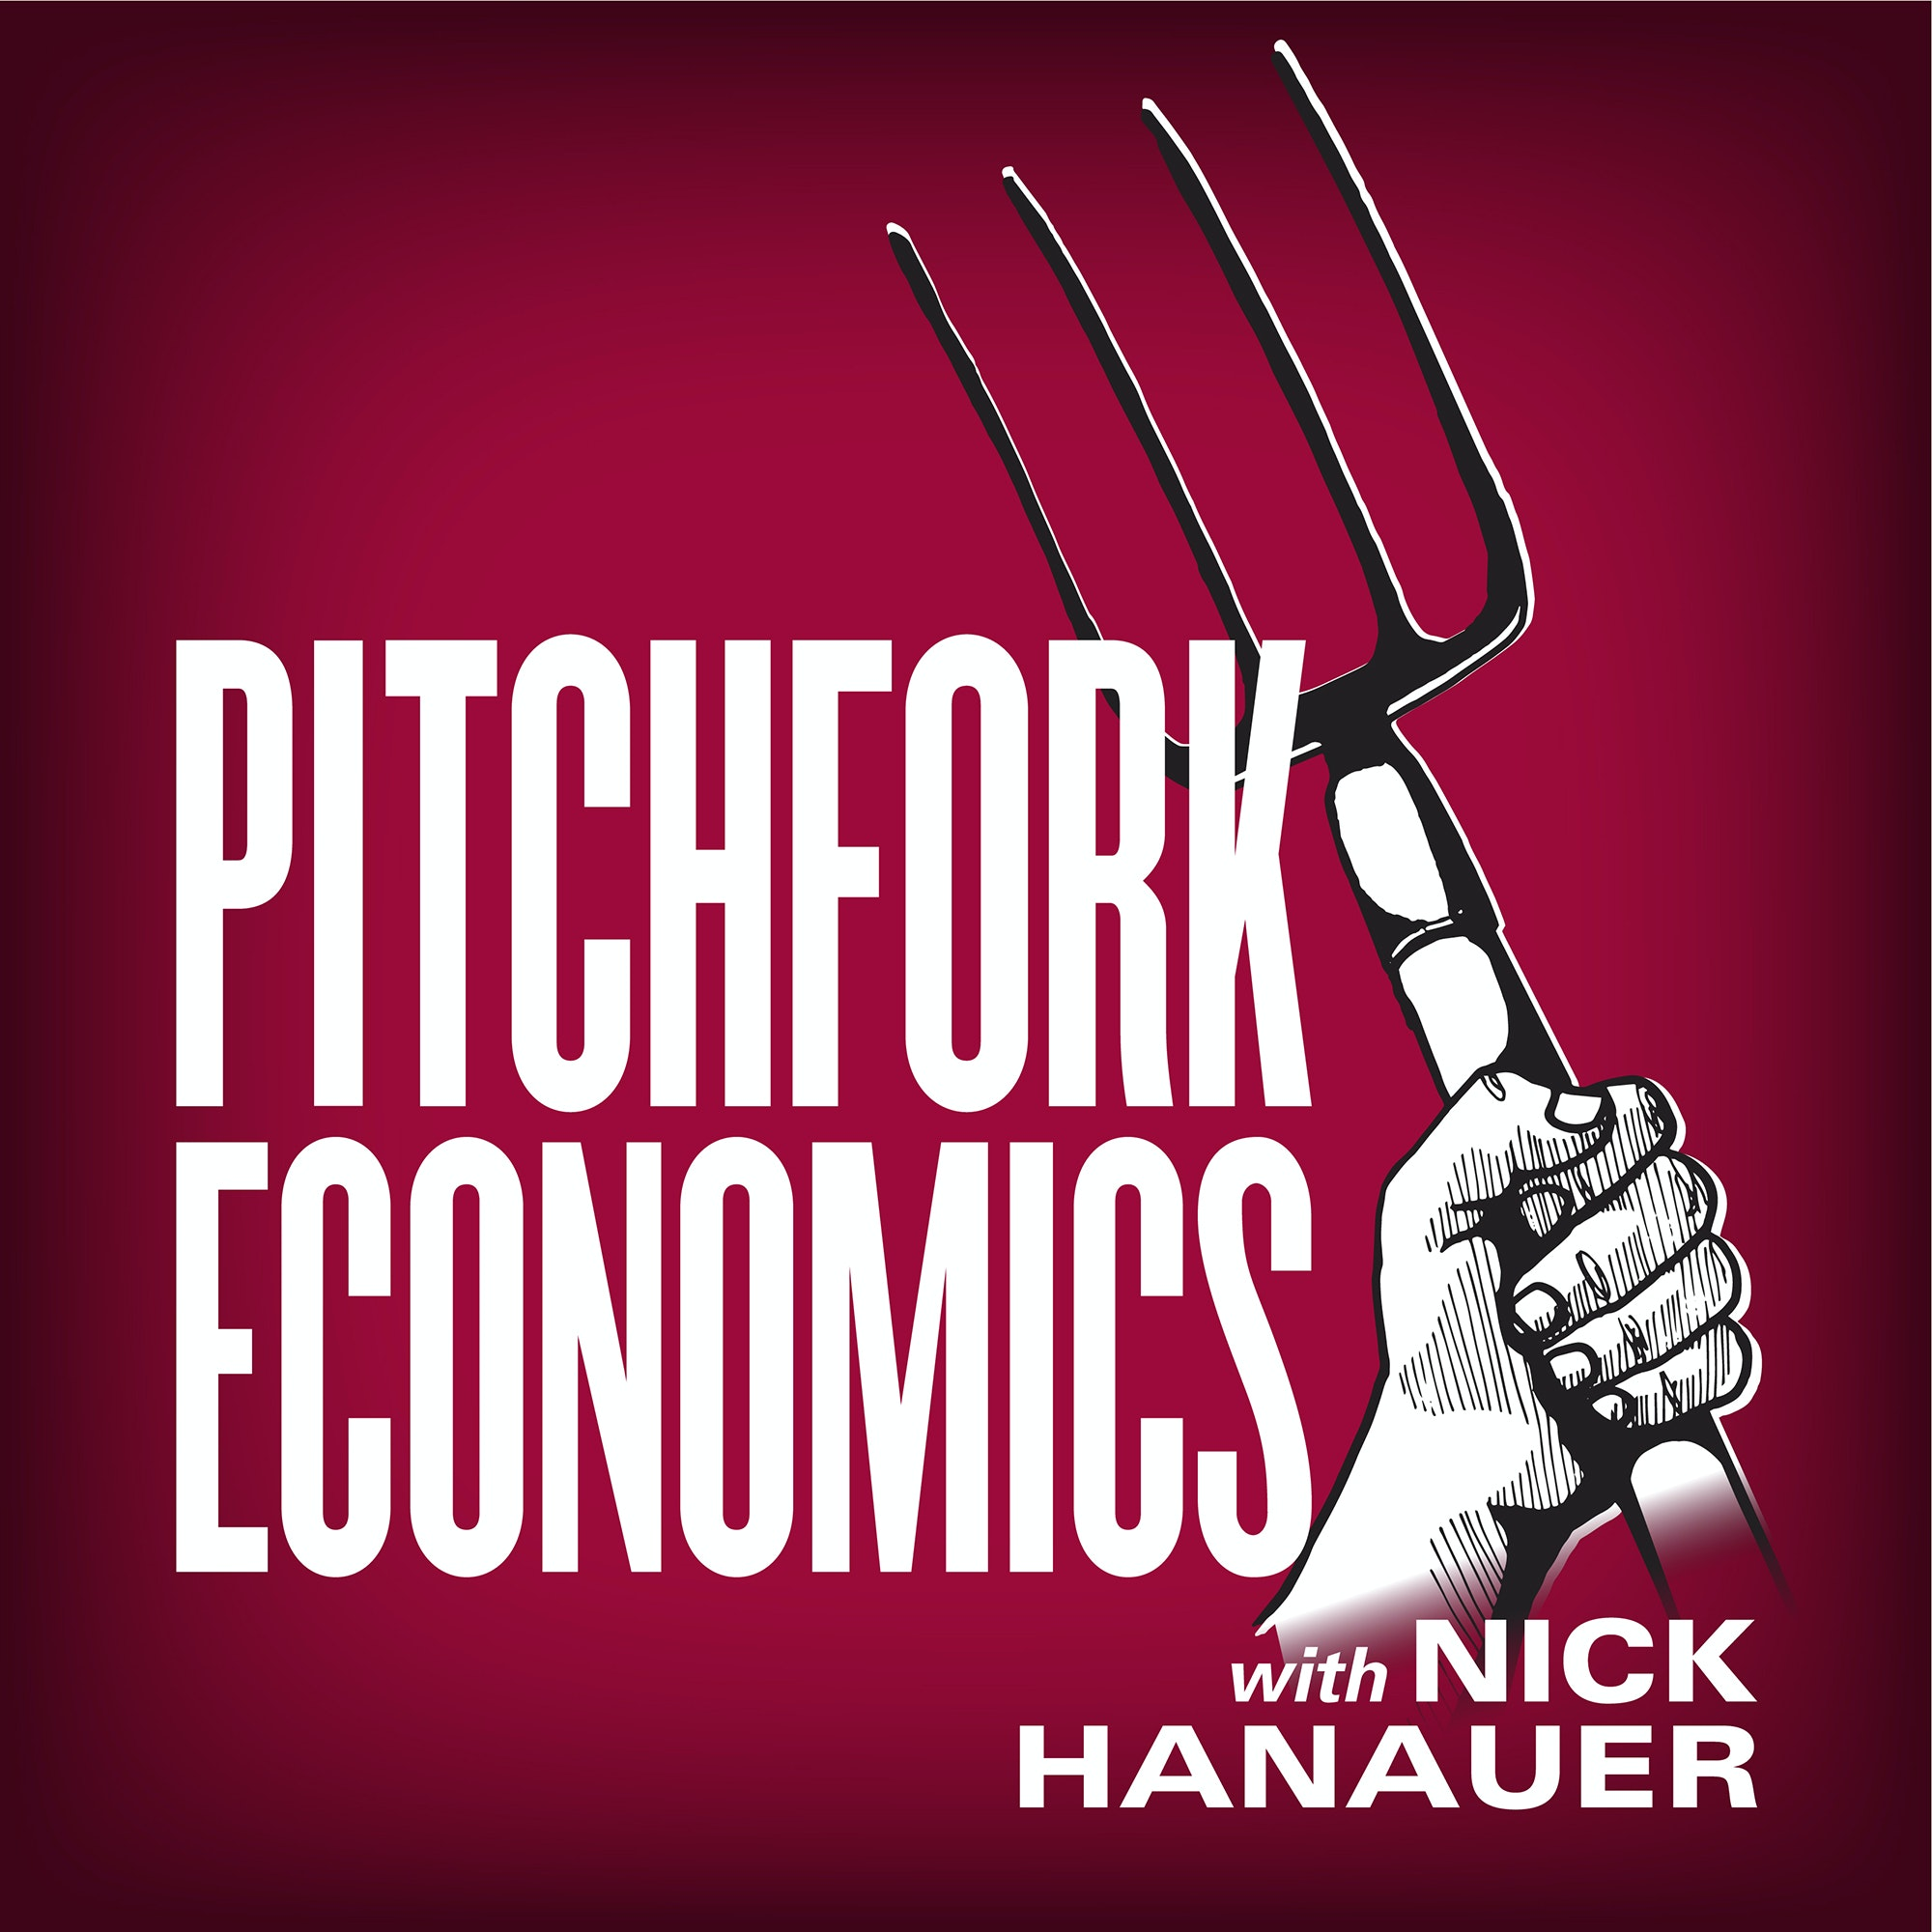 Pitchfork Economics with Nick Hanauer Podcast | Free